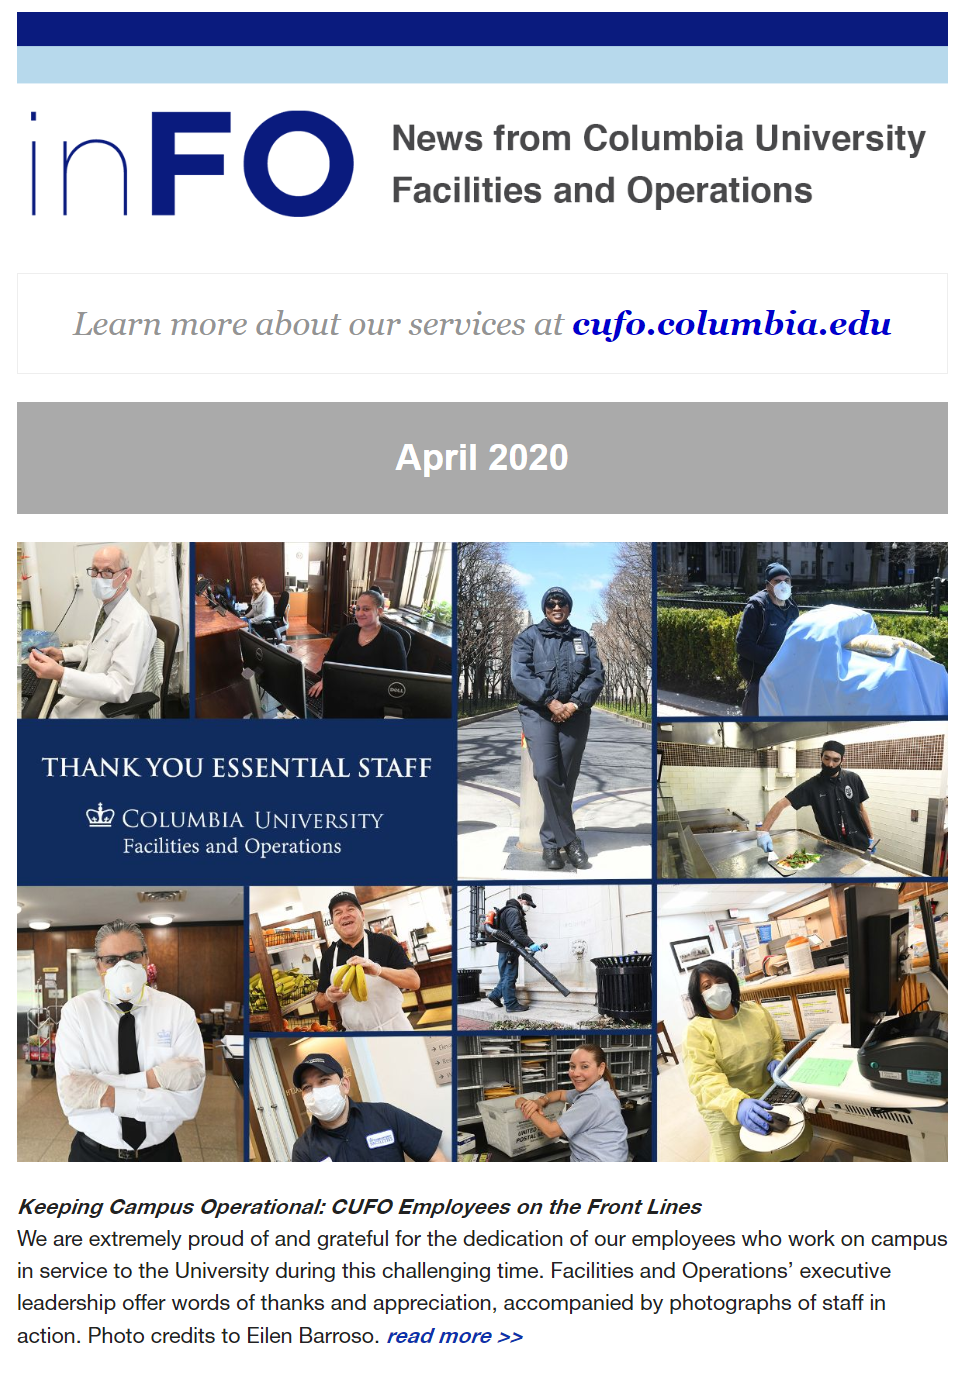 Screenshot of the April 2020 e-newsletter, showing a collage of photos of essential workers